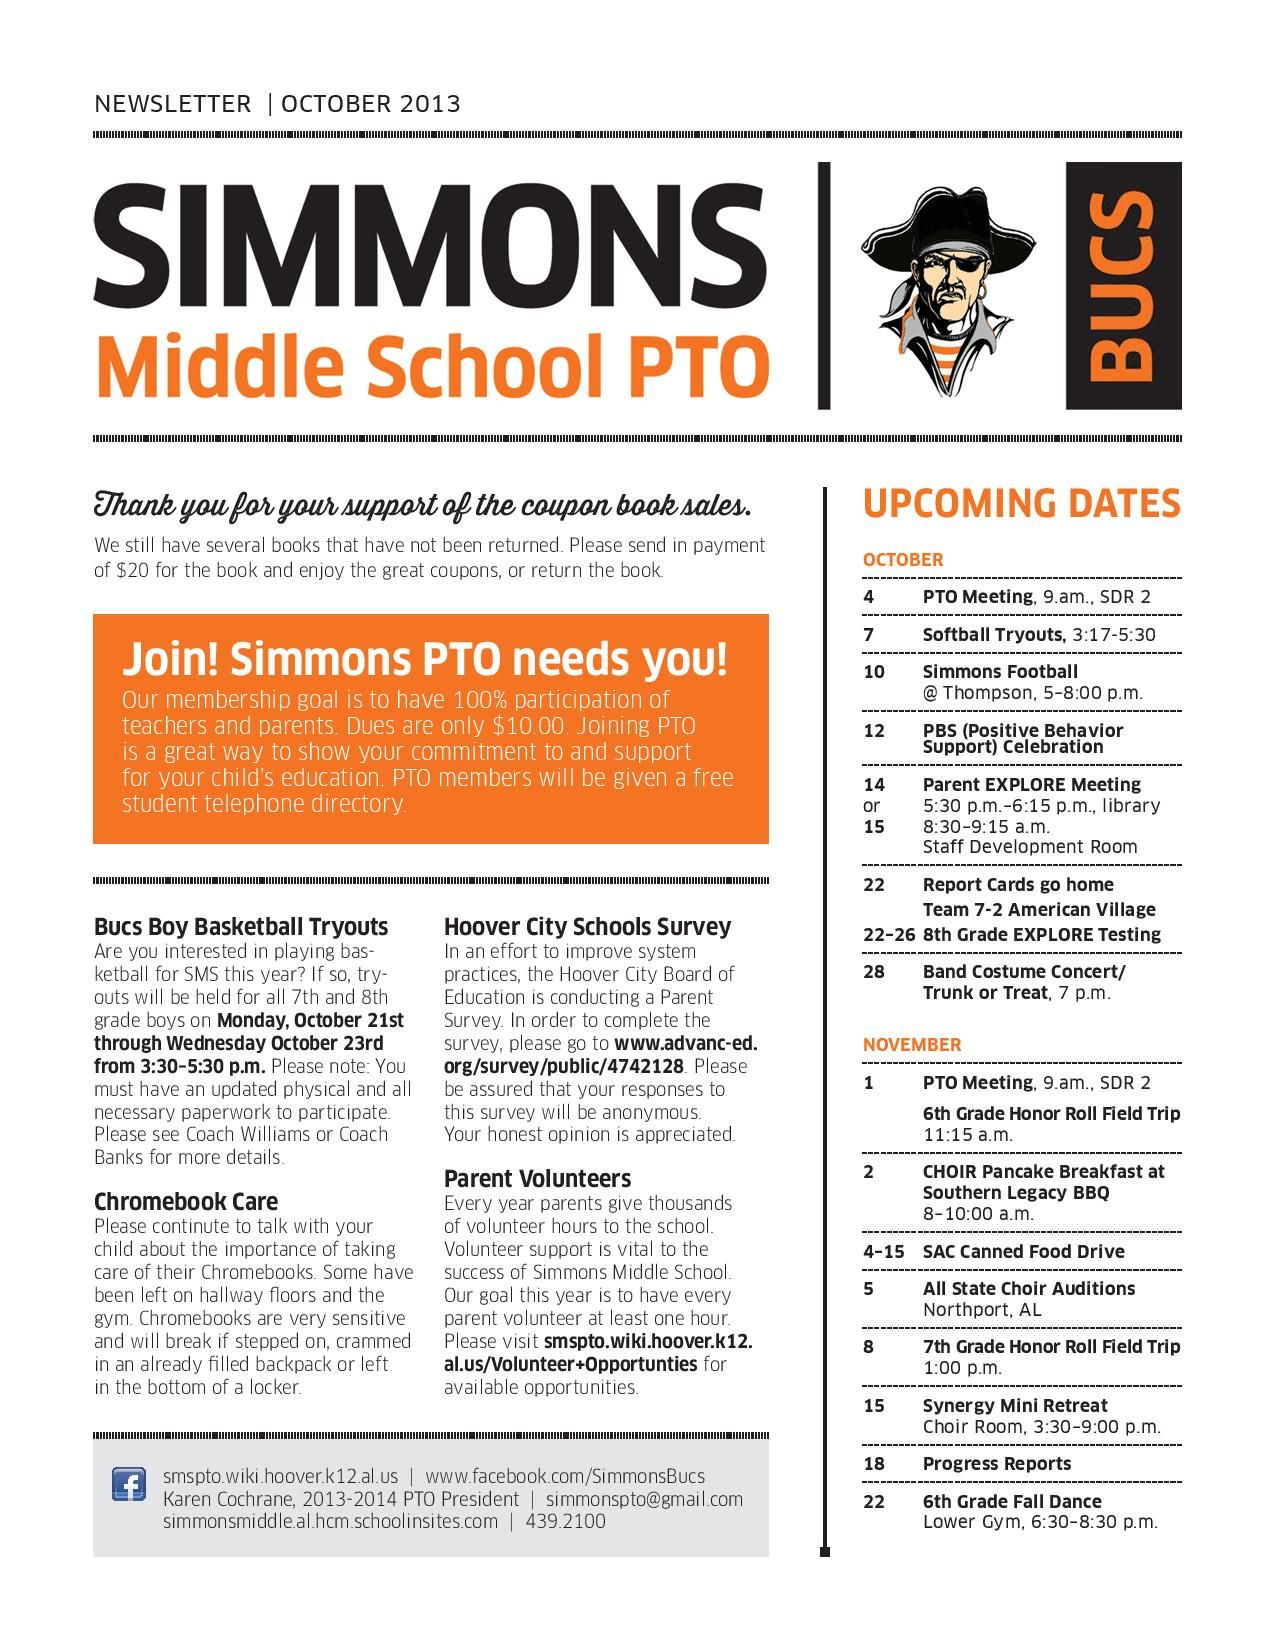 Simmons Middle School Latest News  Sms Pto Newsletter  October